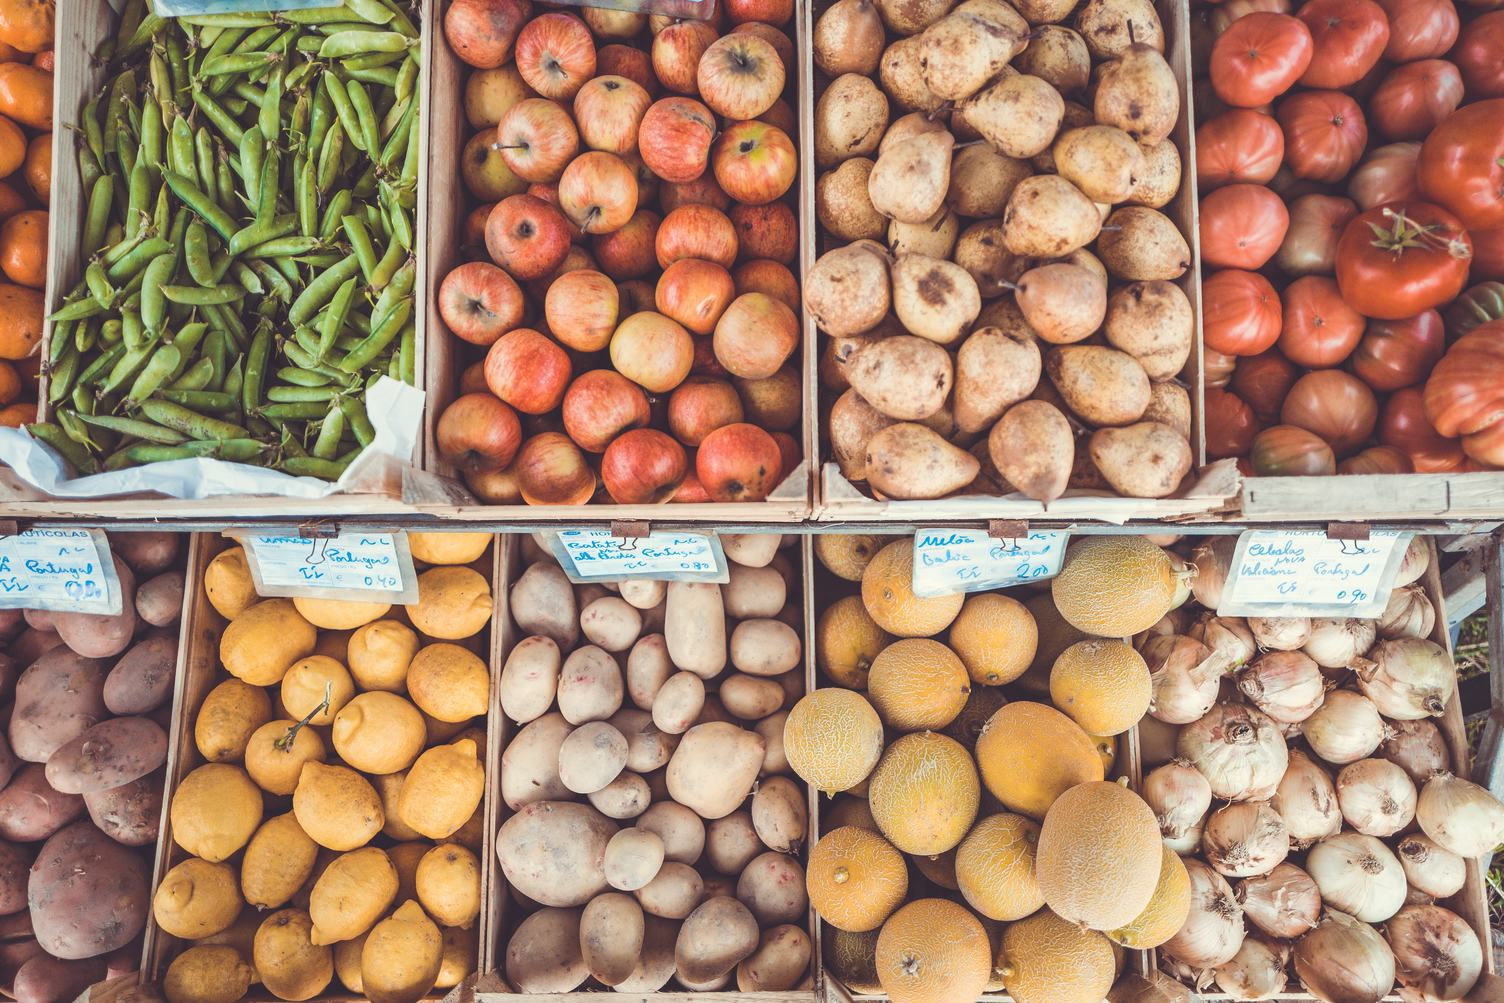 In the Marketplace Boxes with Vegetables and Fruits